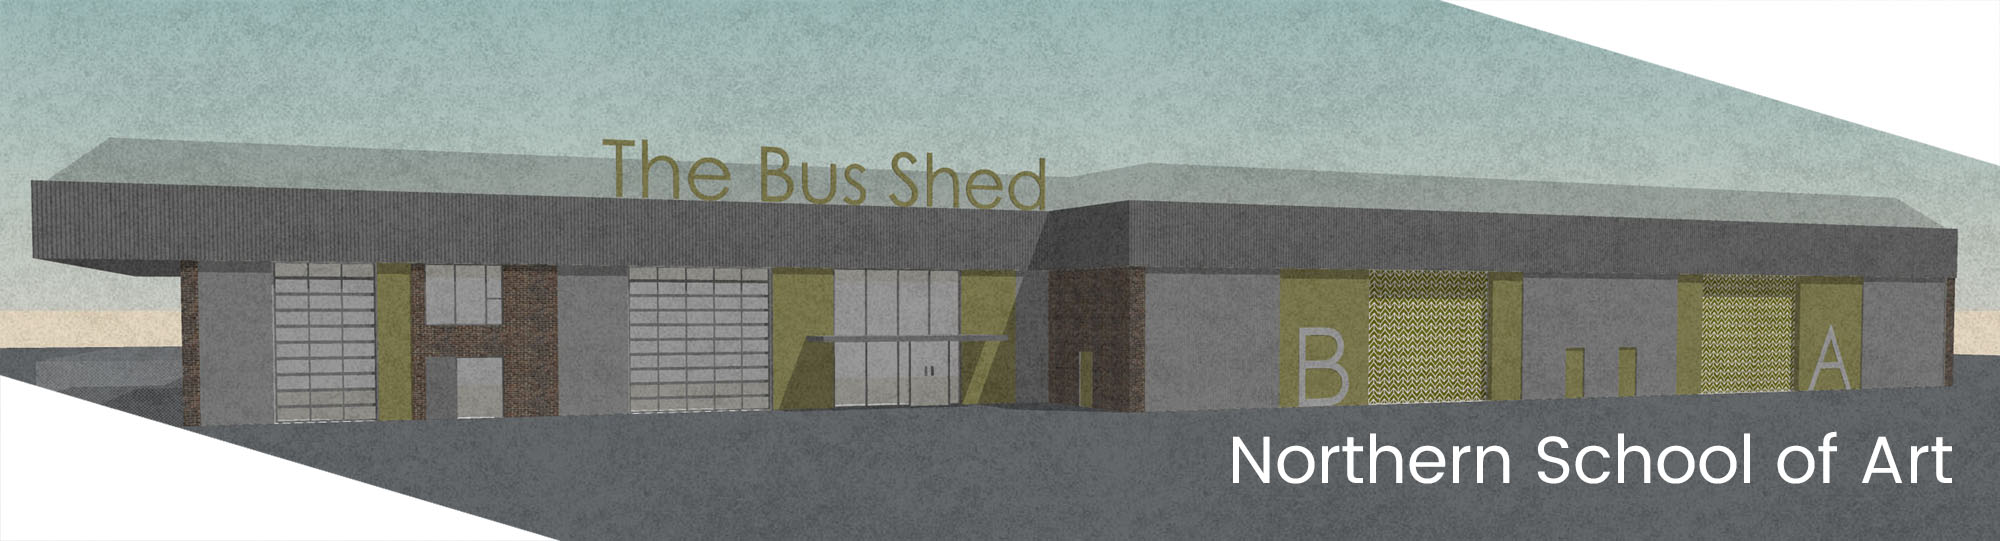 Niven Architects - Northern School of Art, Bus Shed Studios.jpg